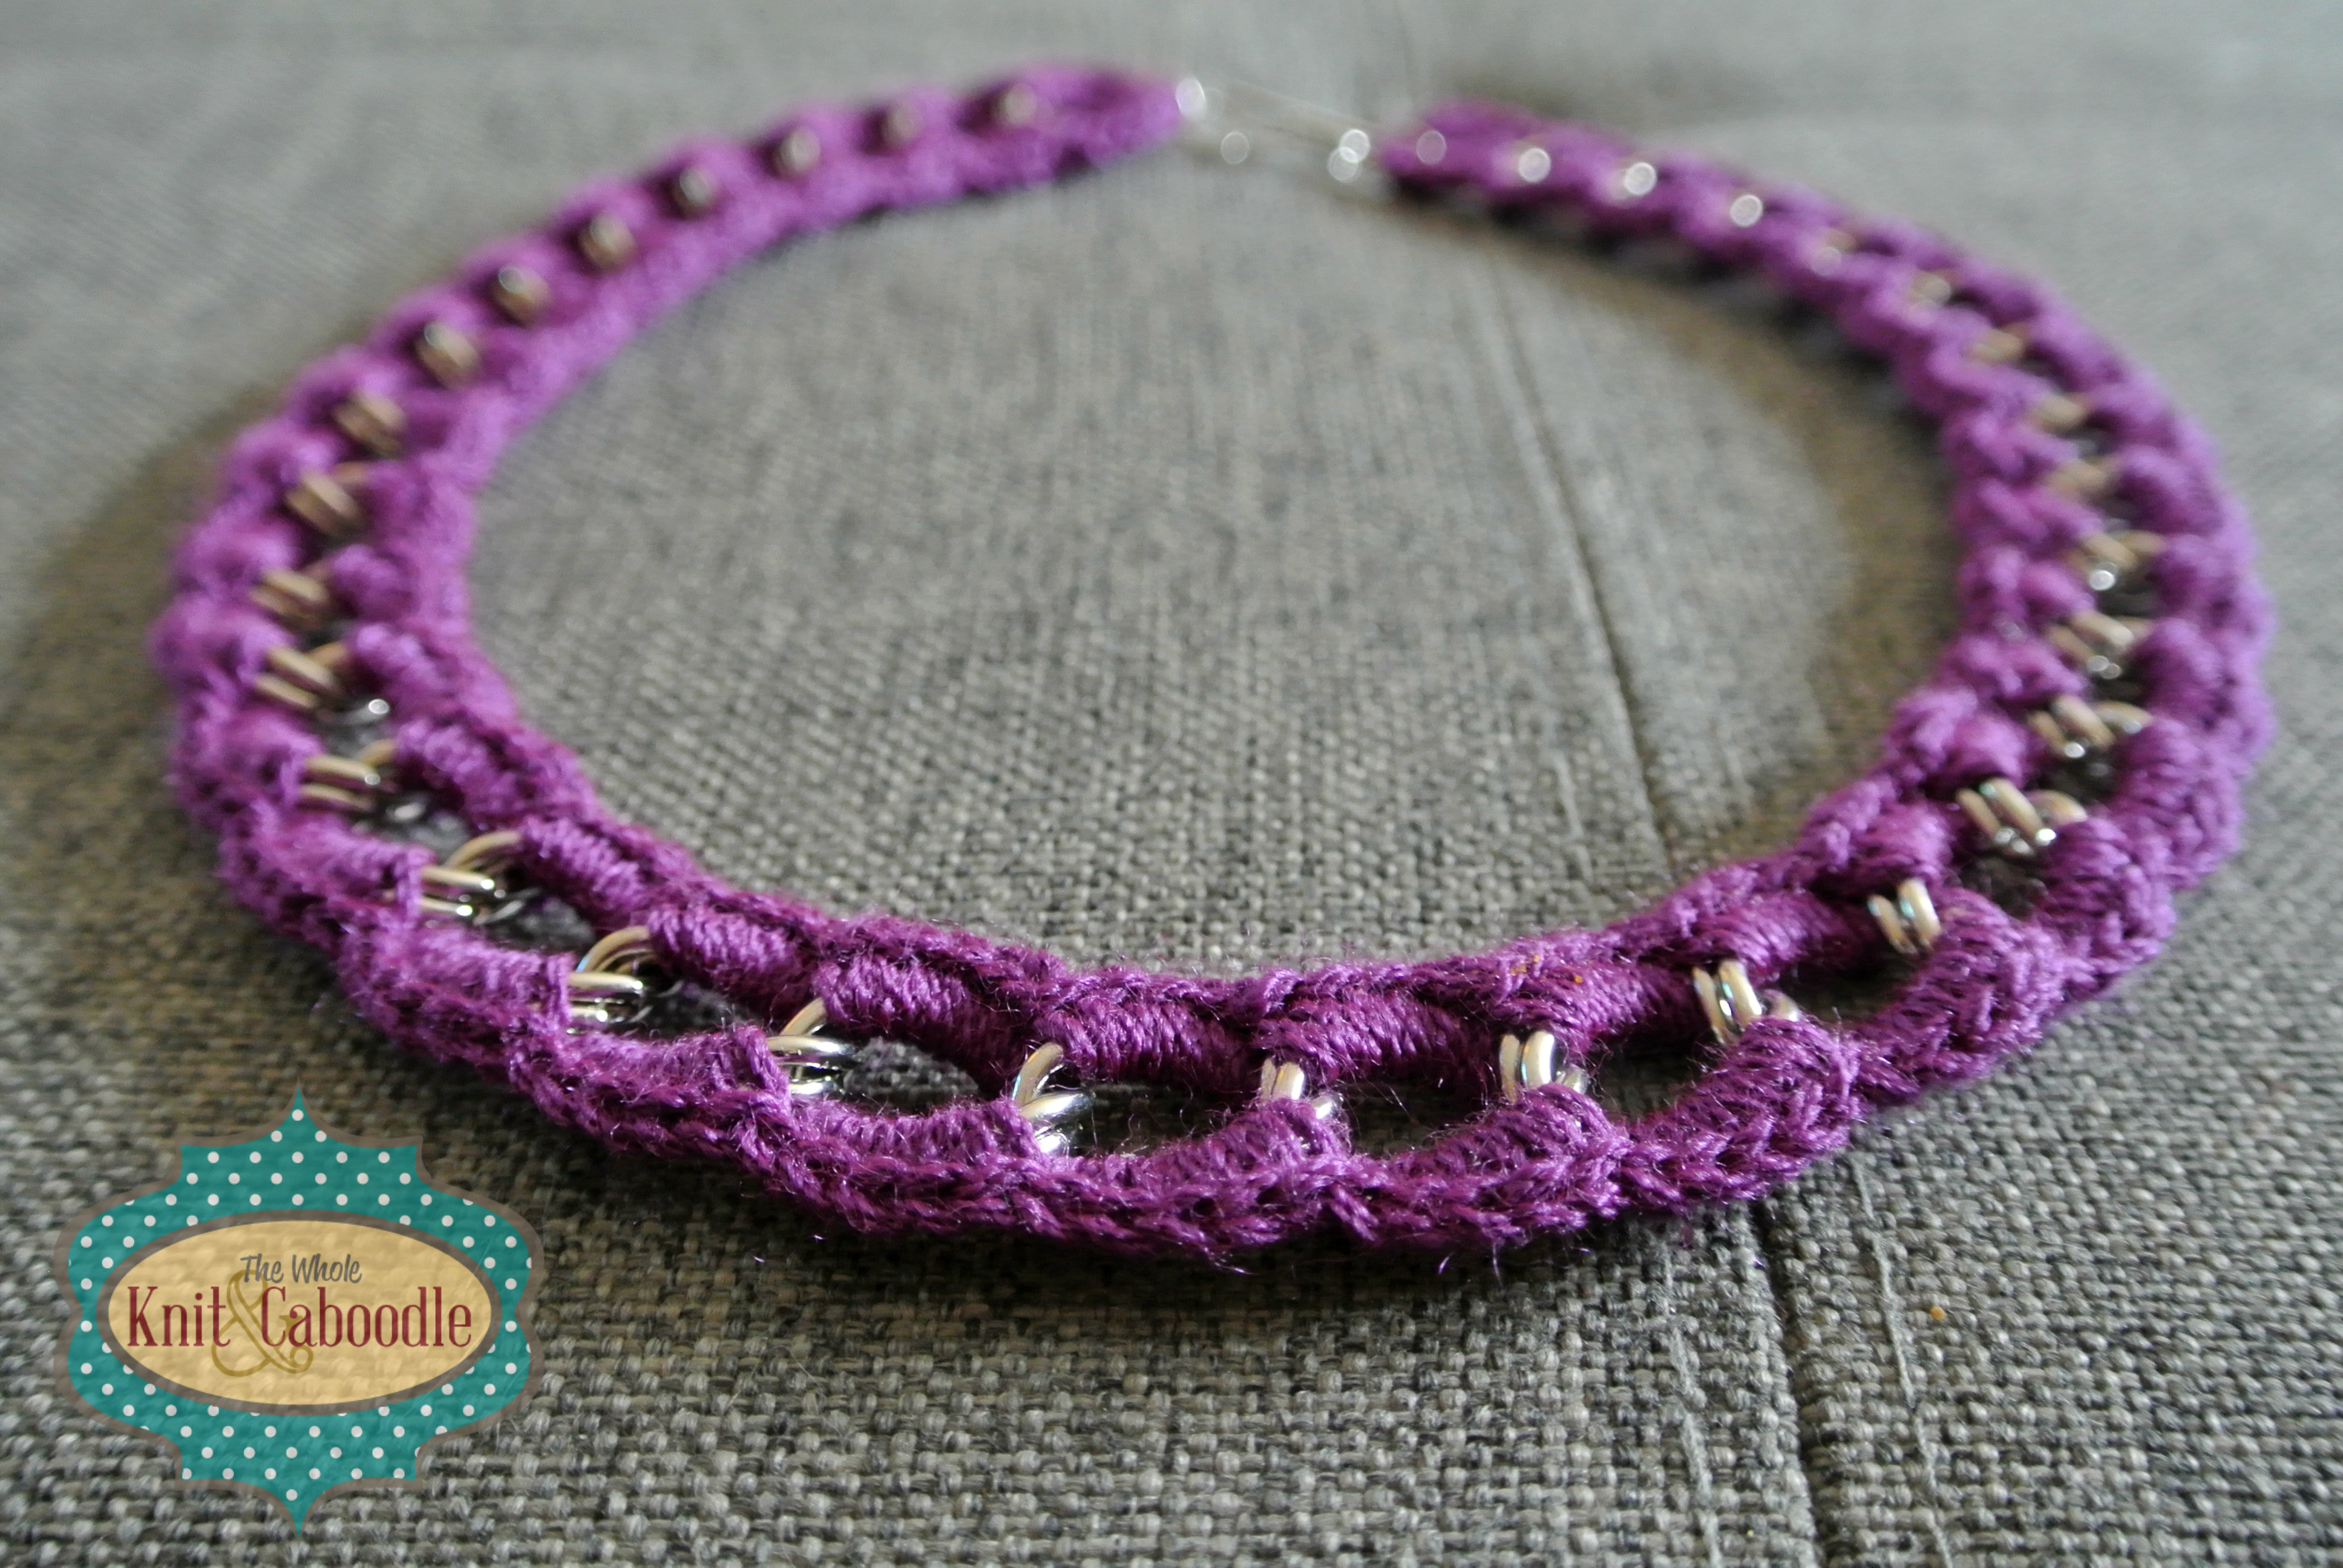 Cute Crocheted Necklace The Whole Knit & Caboodle